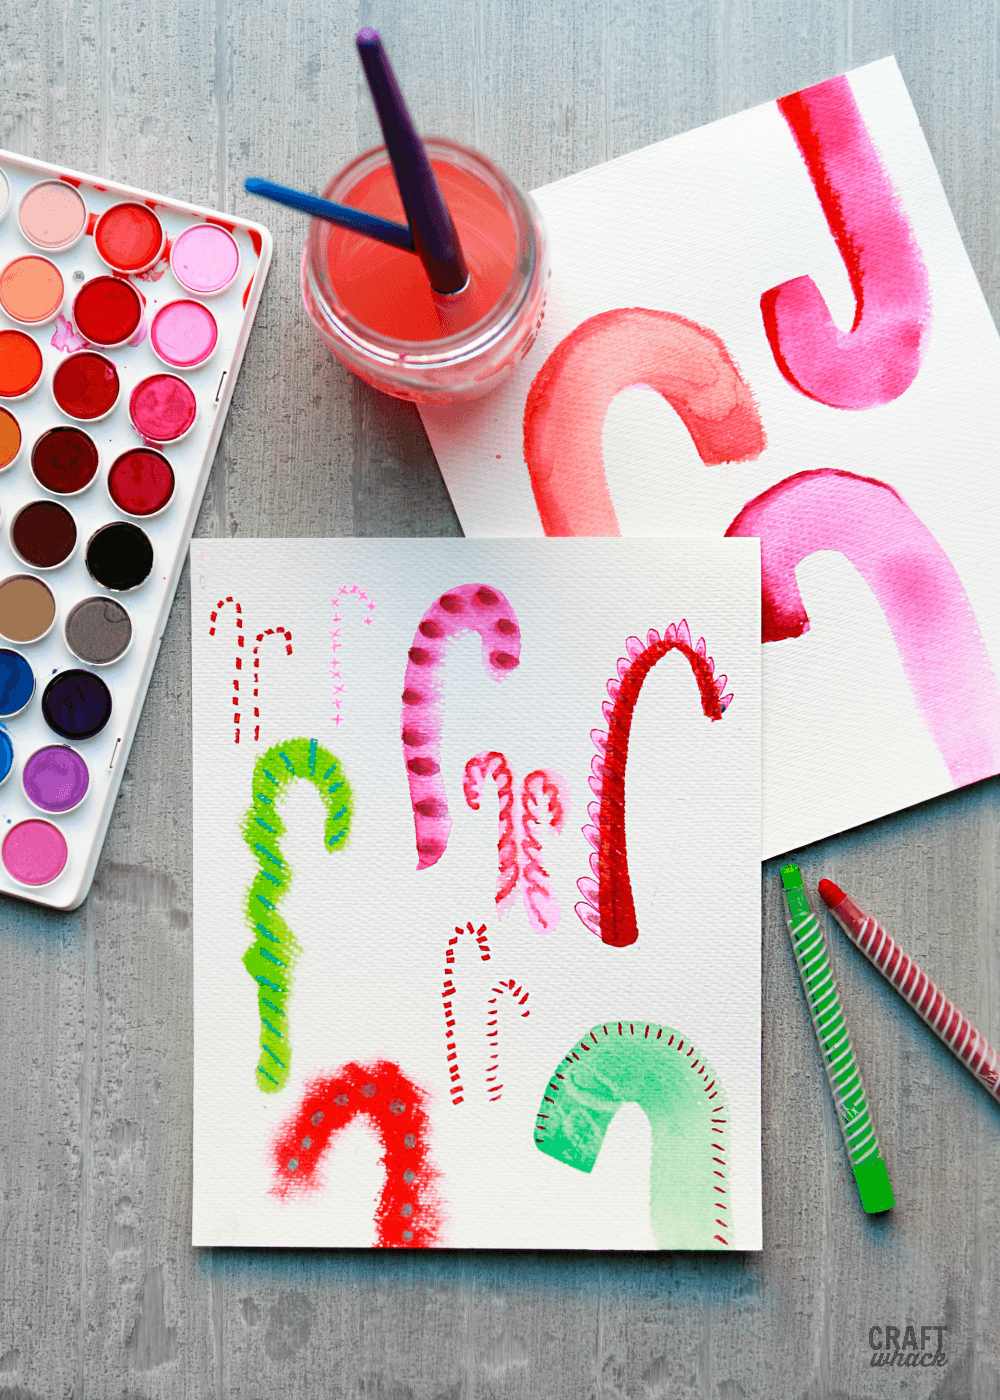 Candy cane paintings and drawings